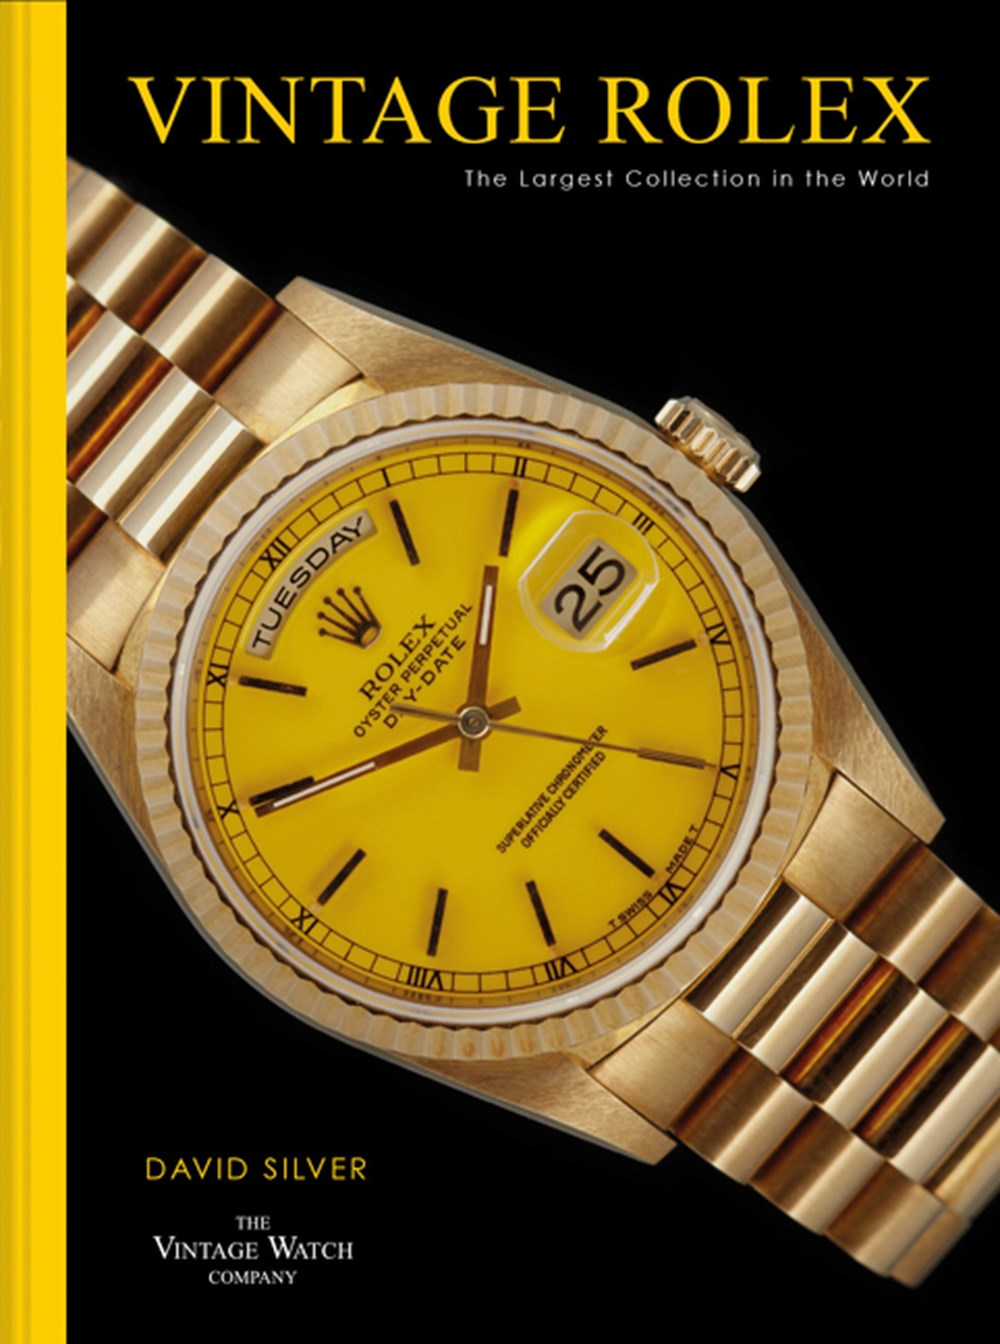 Vintage Rolex The Largest Collection in the World